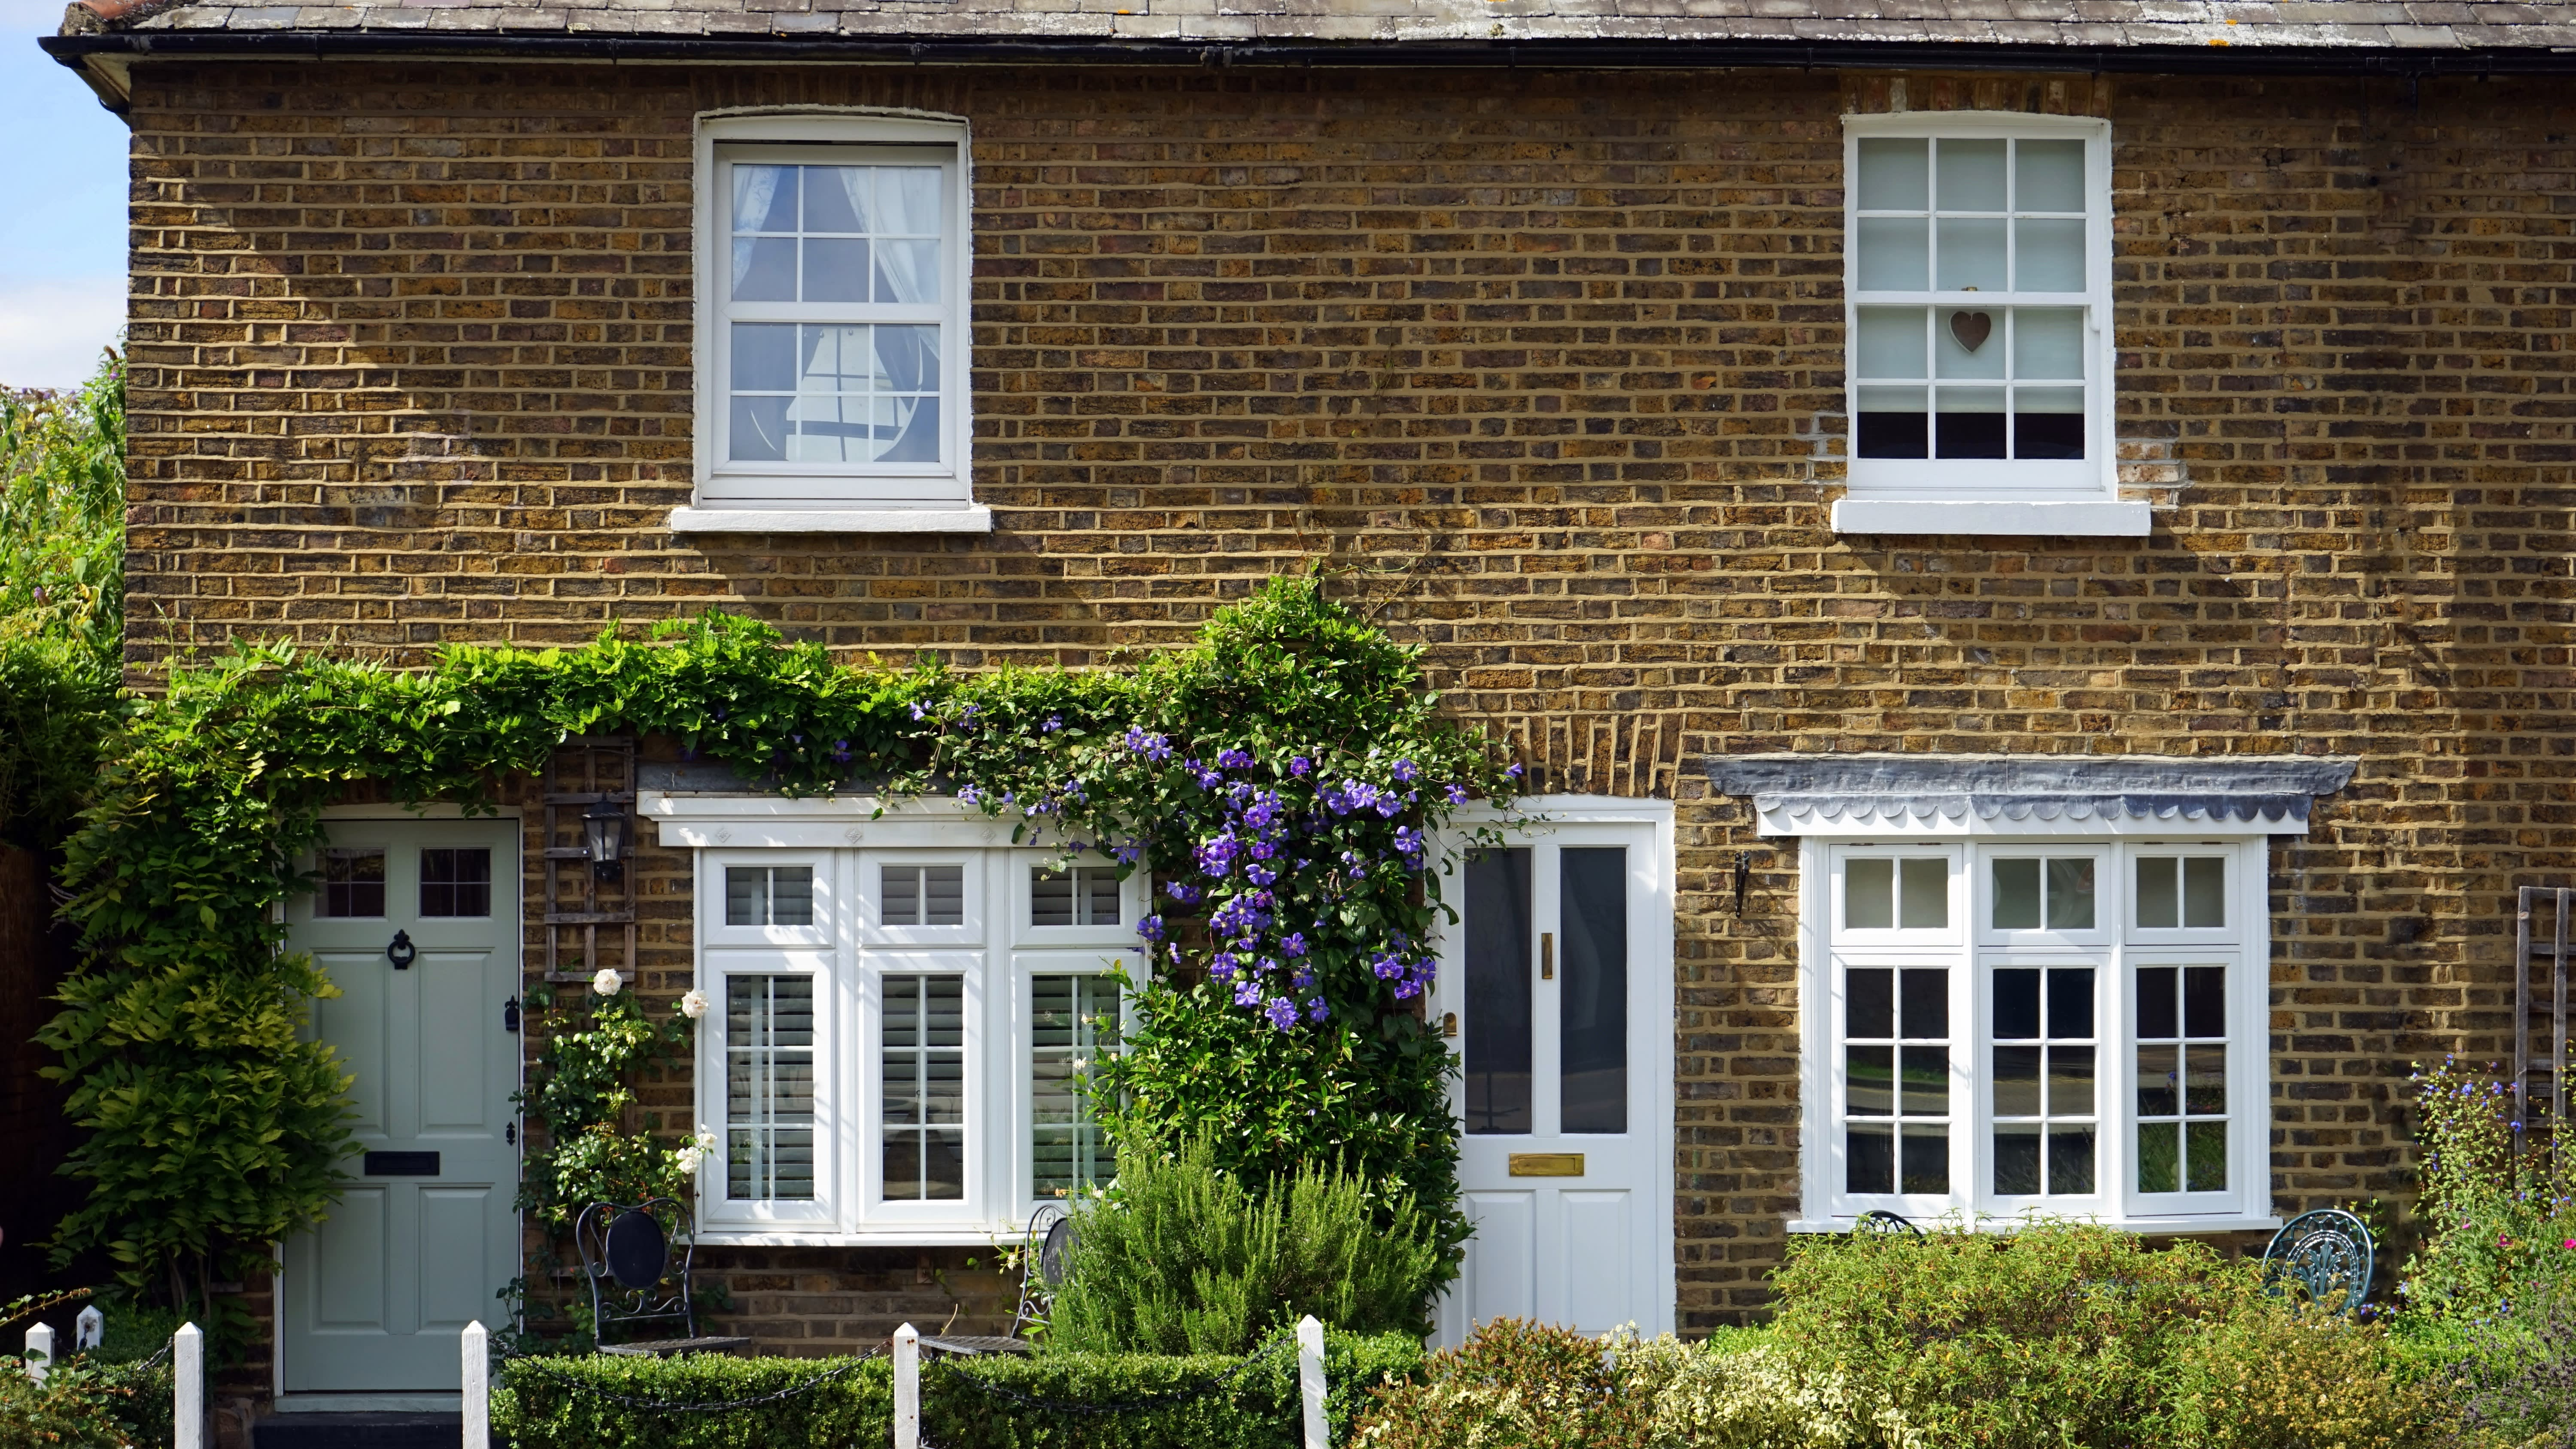 House buyers in rural towns face 13% premiums